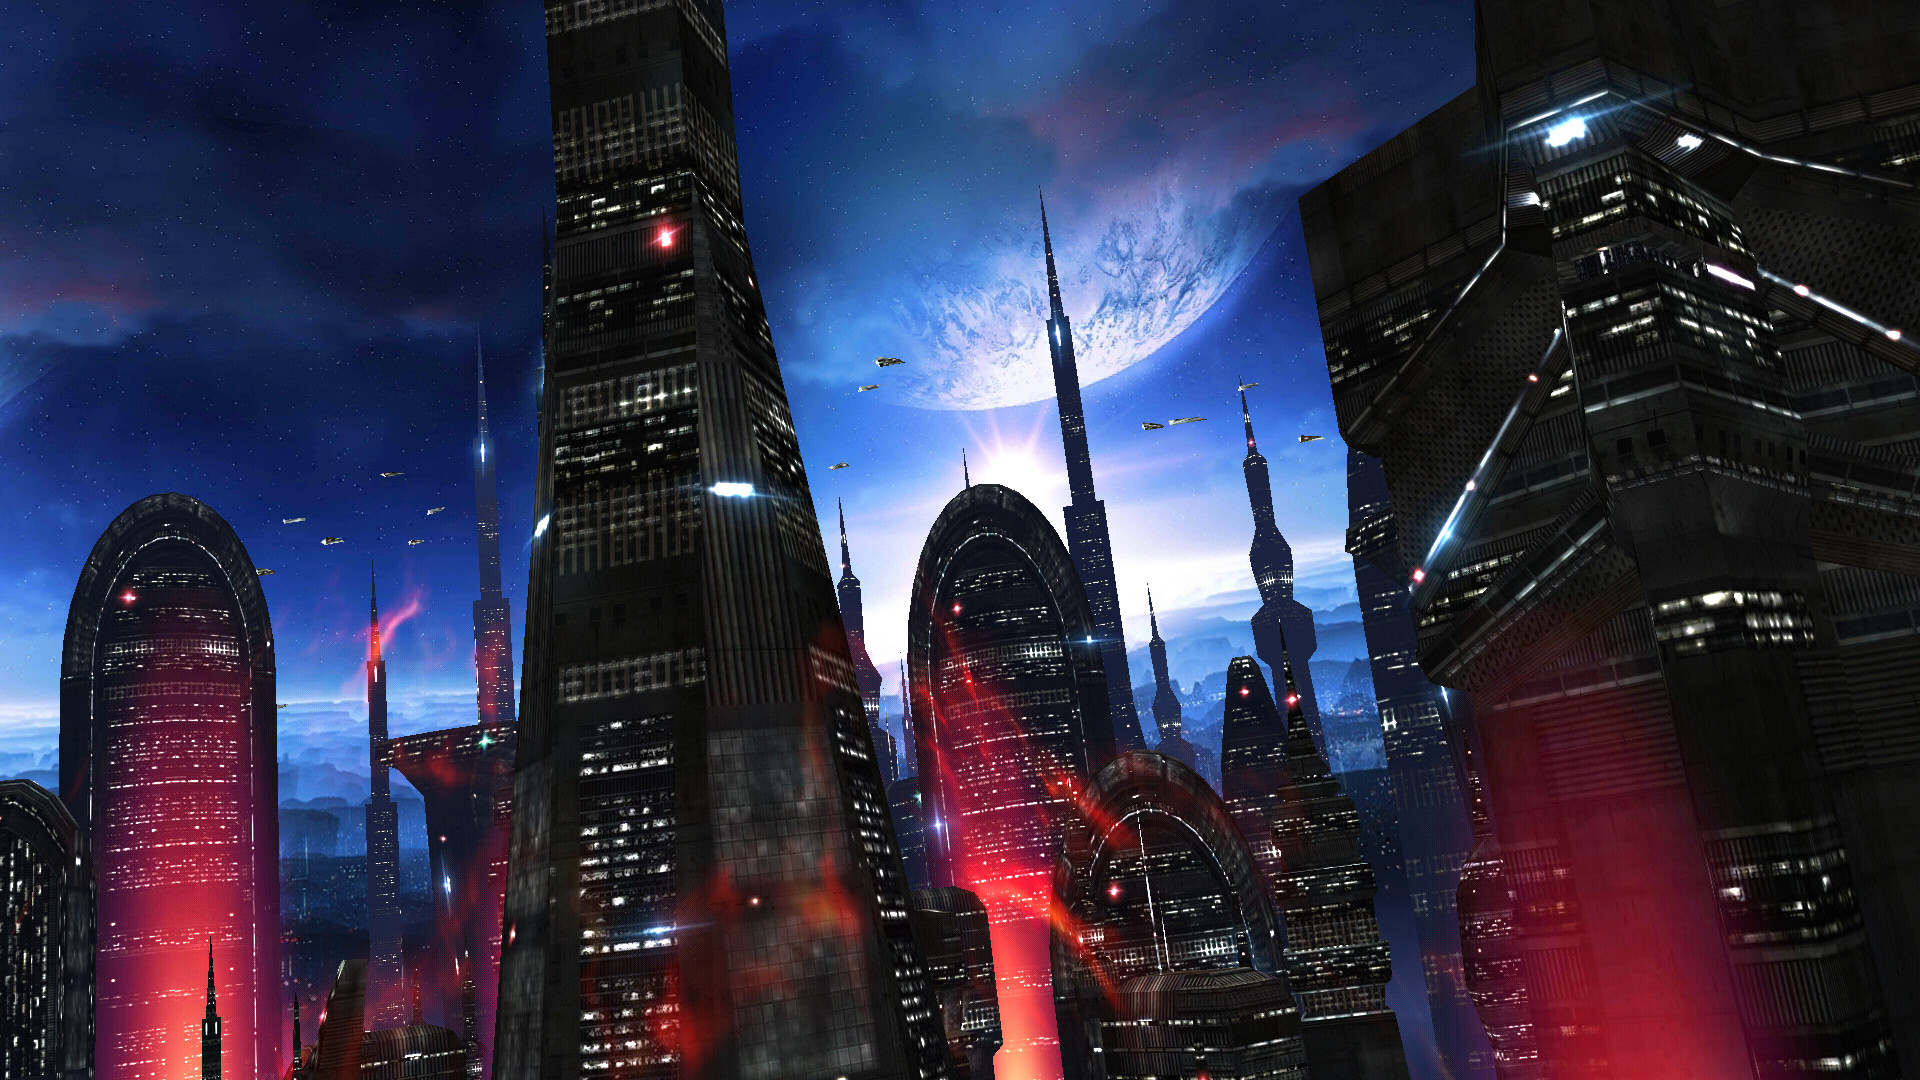 Space Colony turns your home screen into an alien cityscape with towering  buildings, epic star-filled skies, and glowing starships flying past.